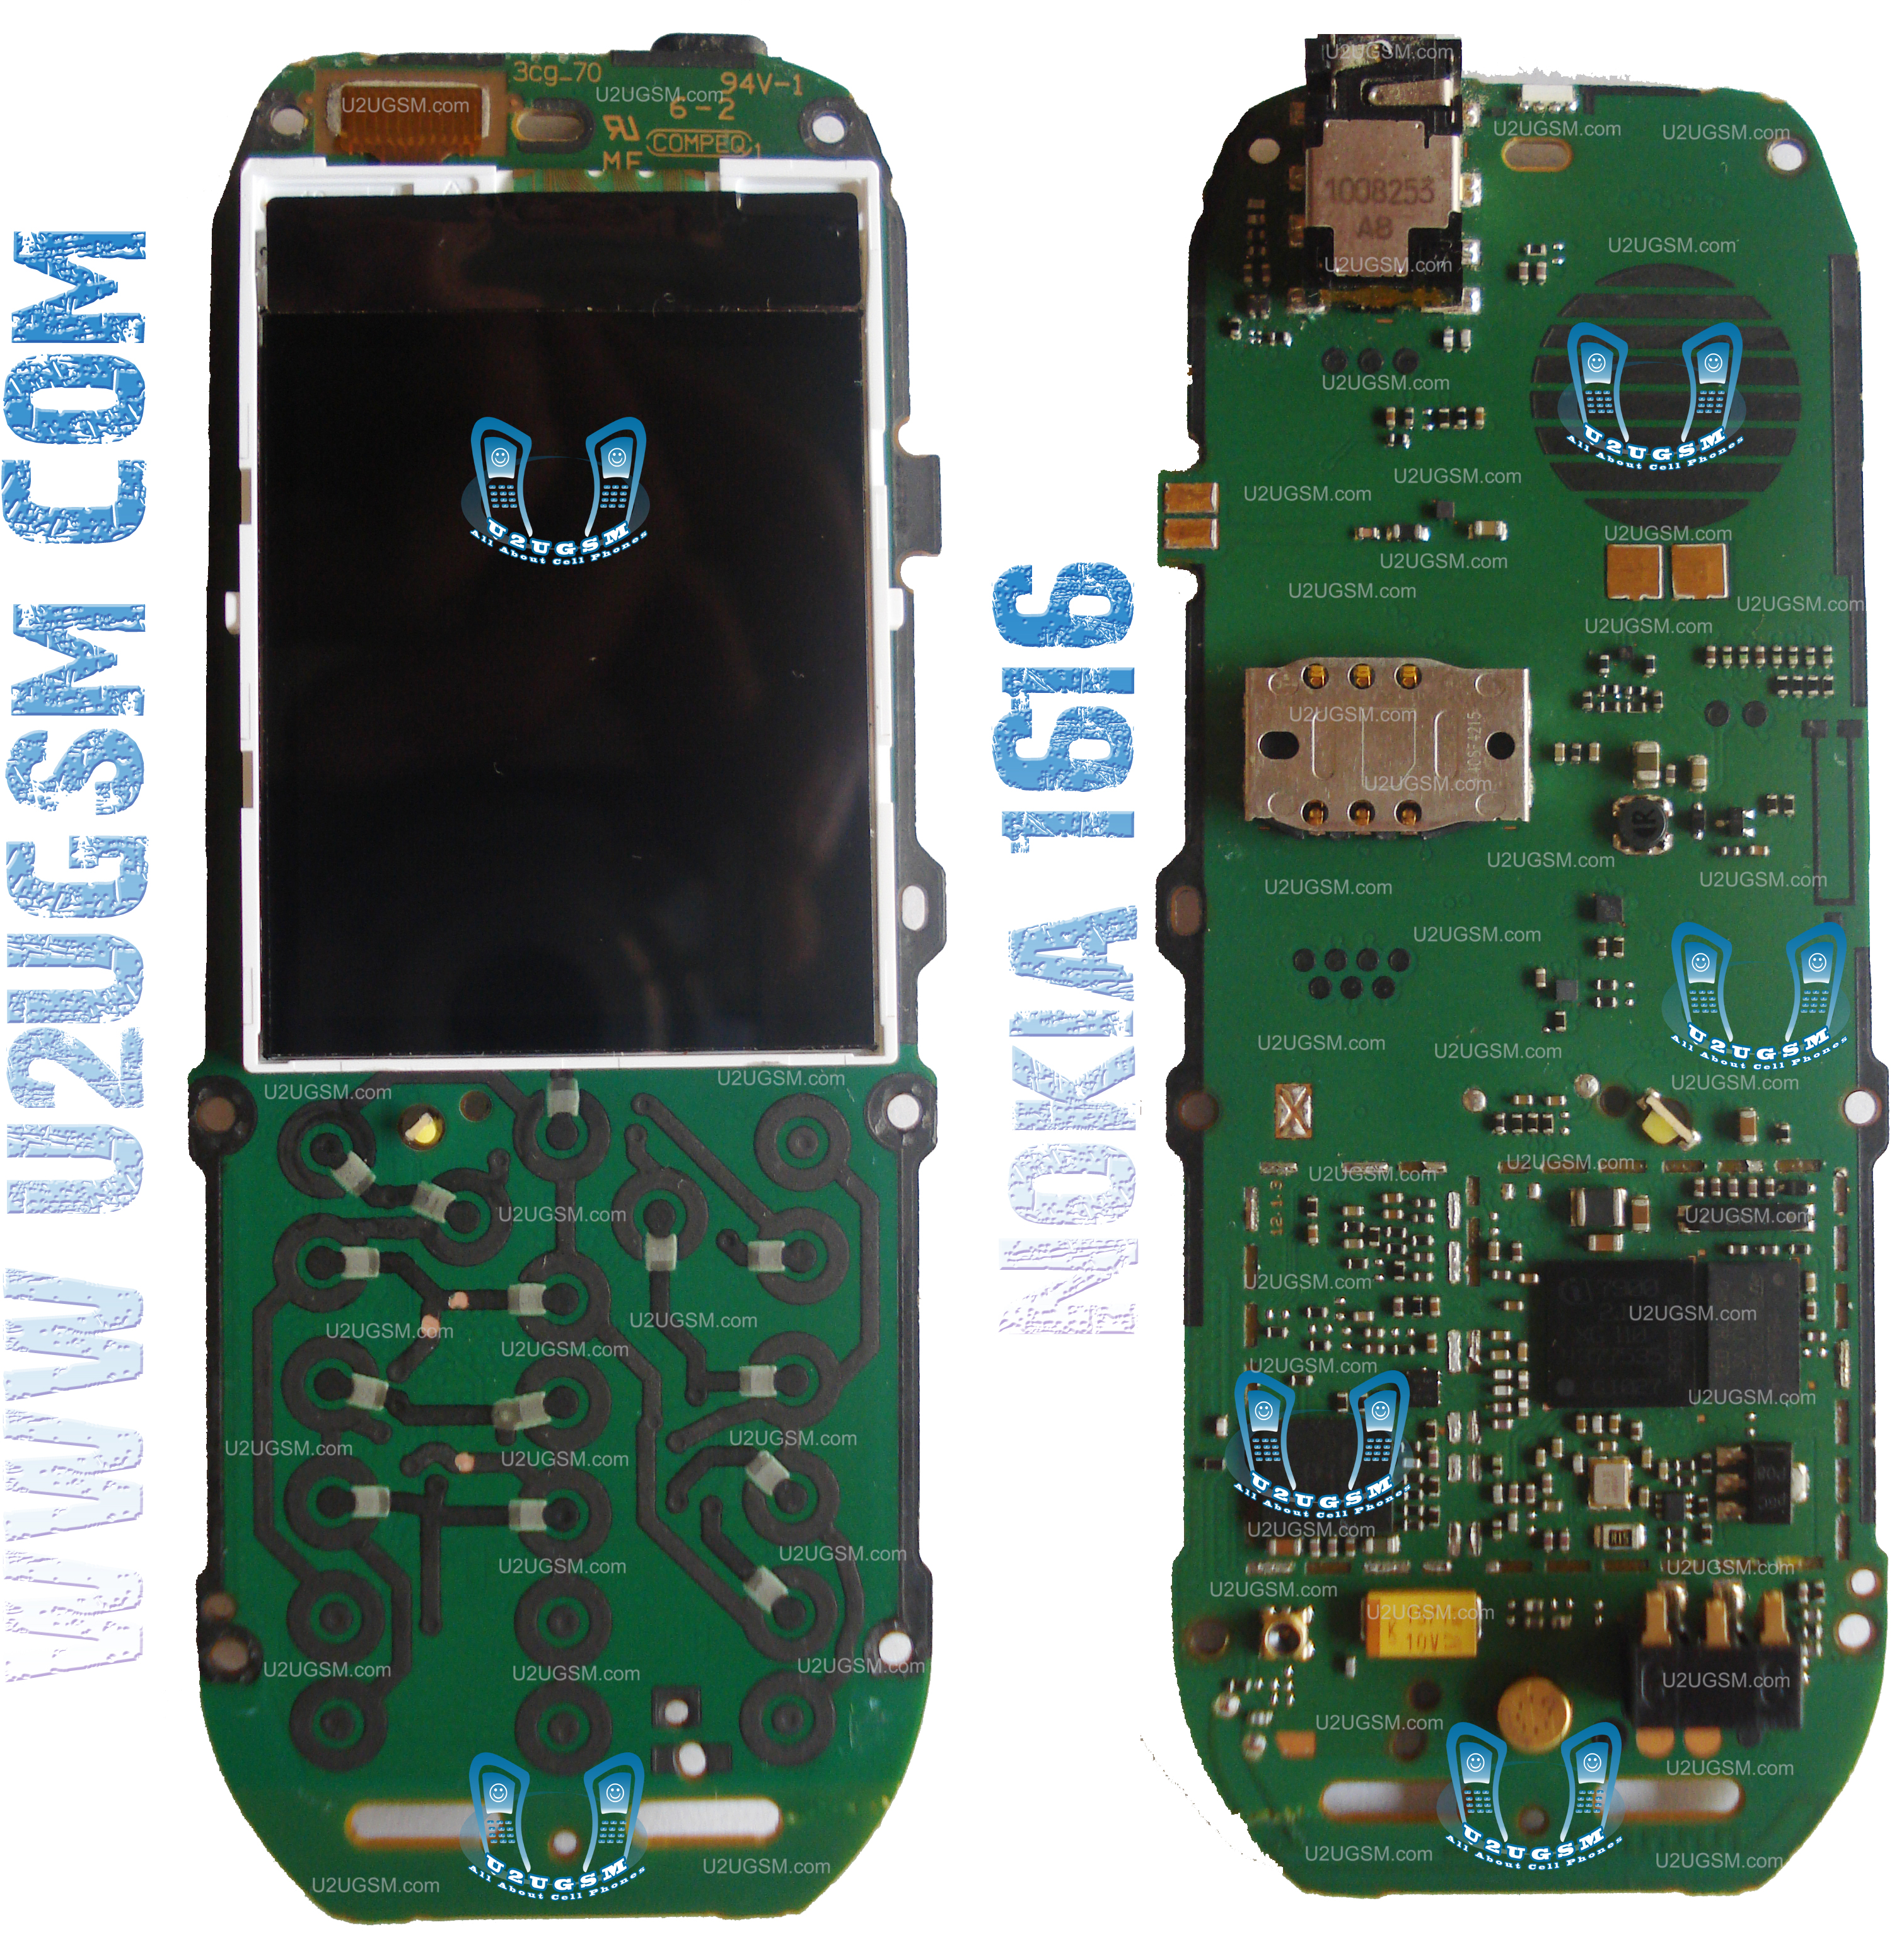 Nokia 1616 Full PCB Diagram Mother Board Layout.